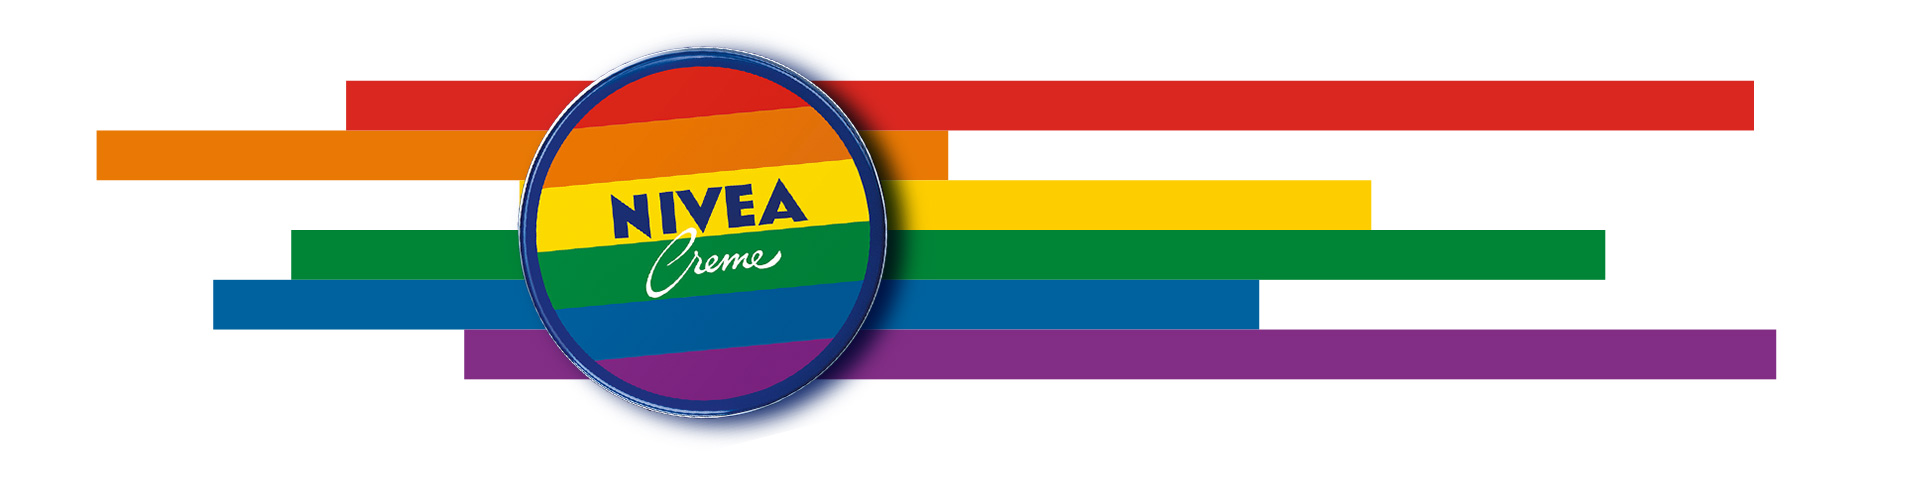 Nivea Creme tin with rainbow flag